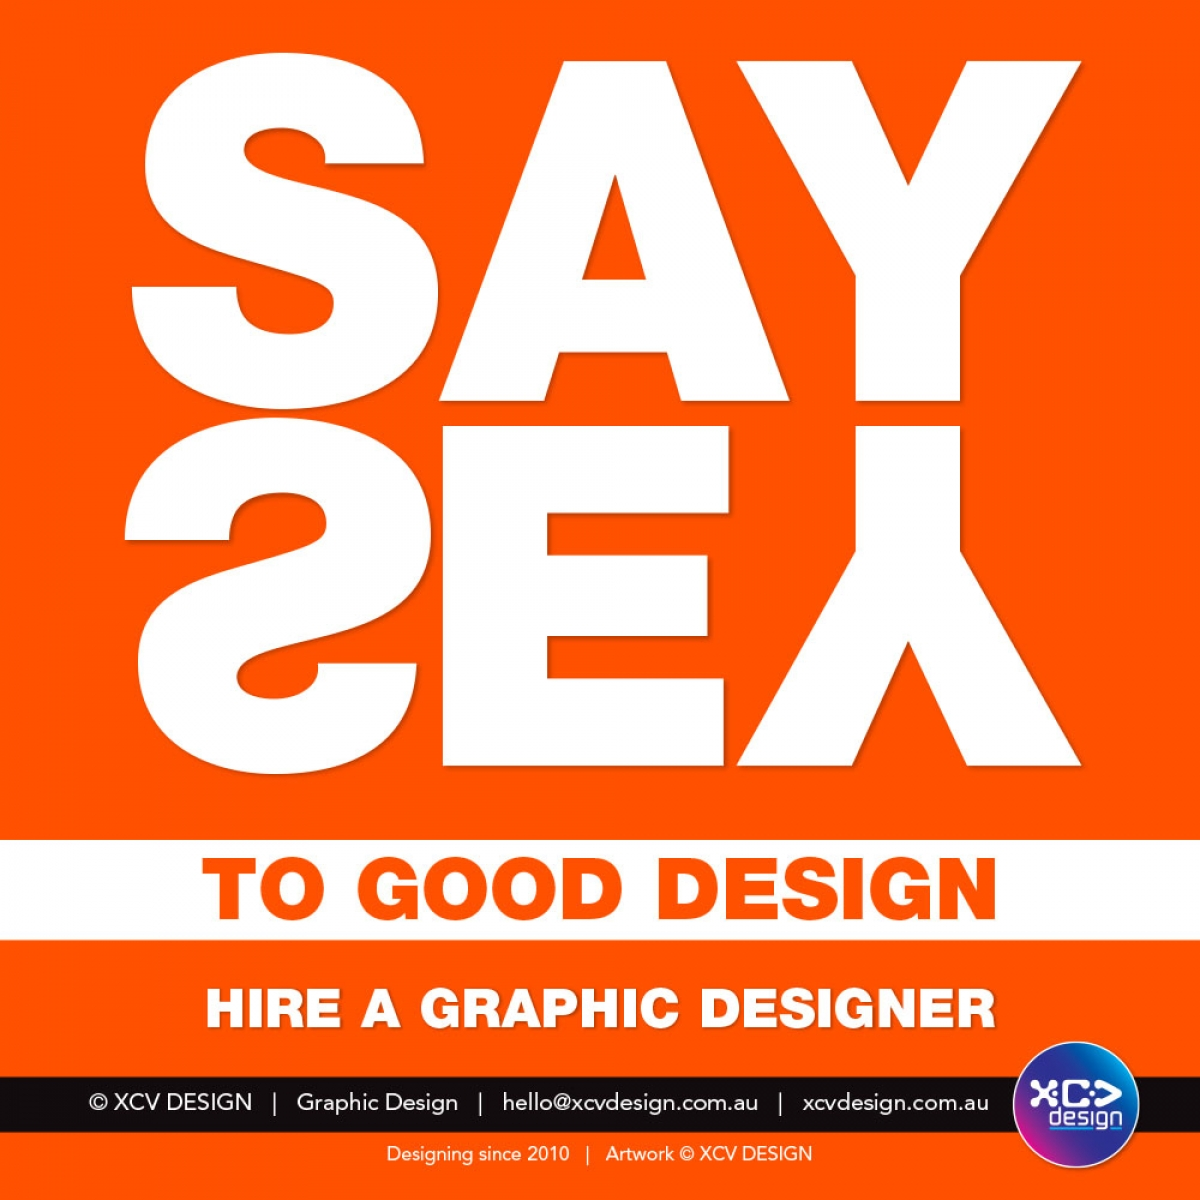 Say YES to Good Design